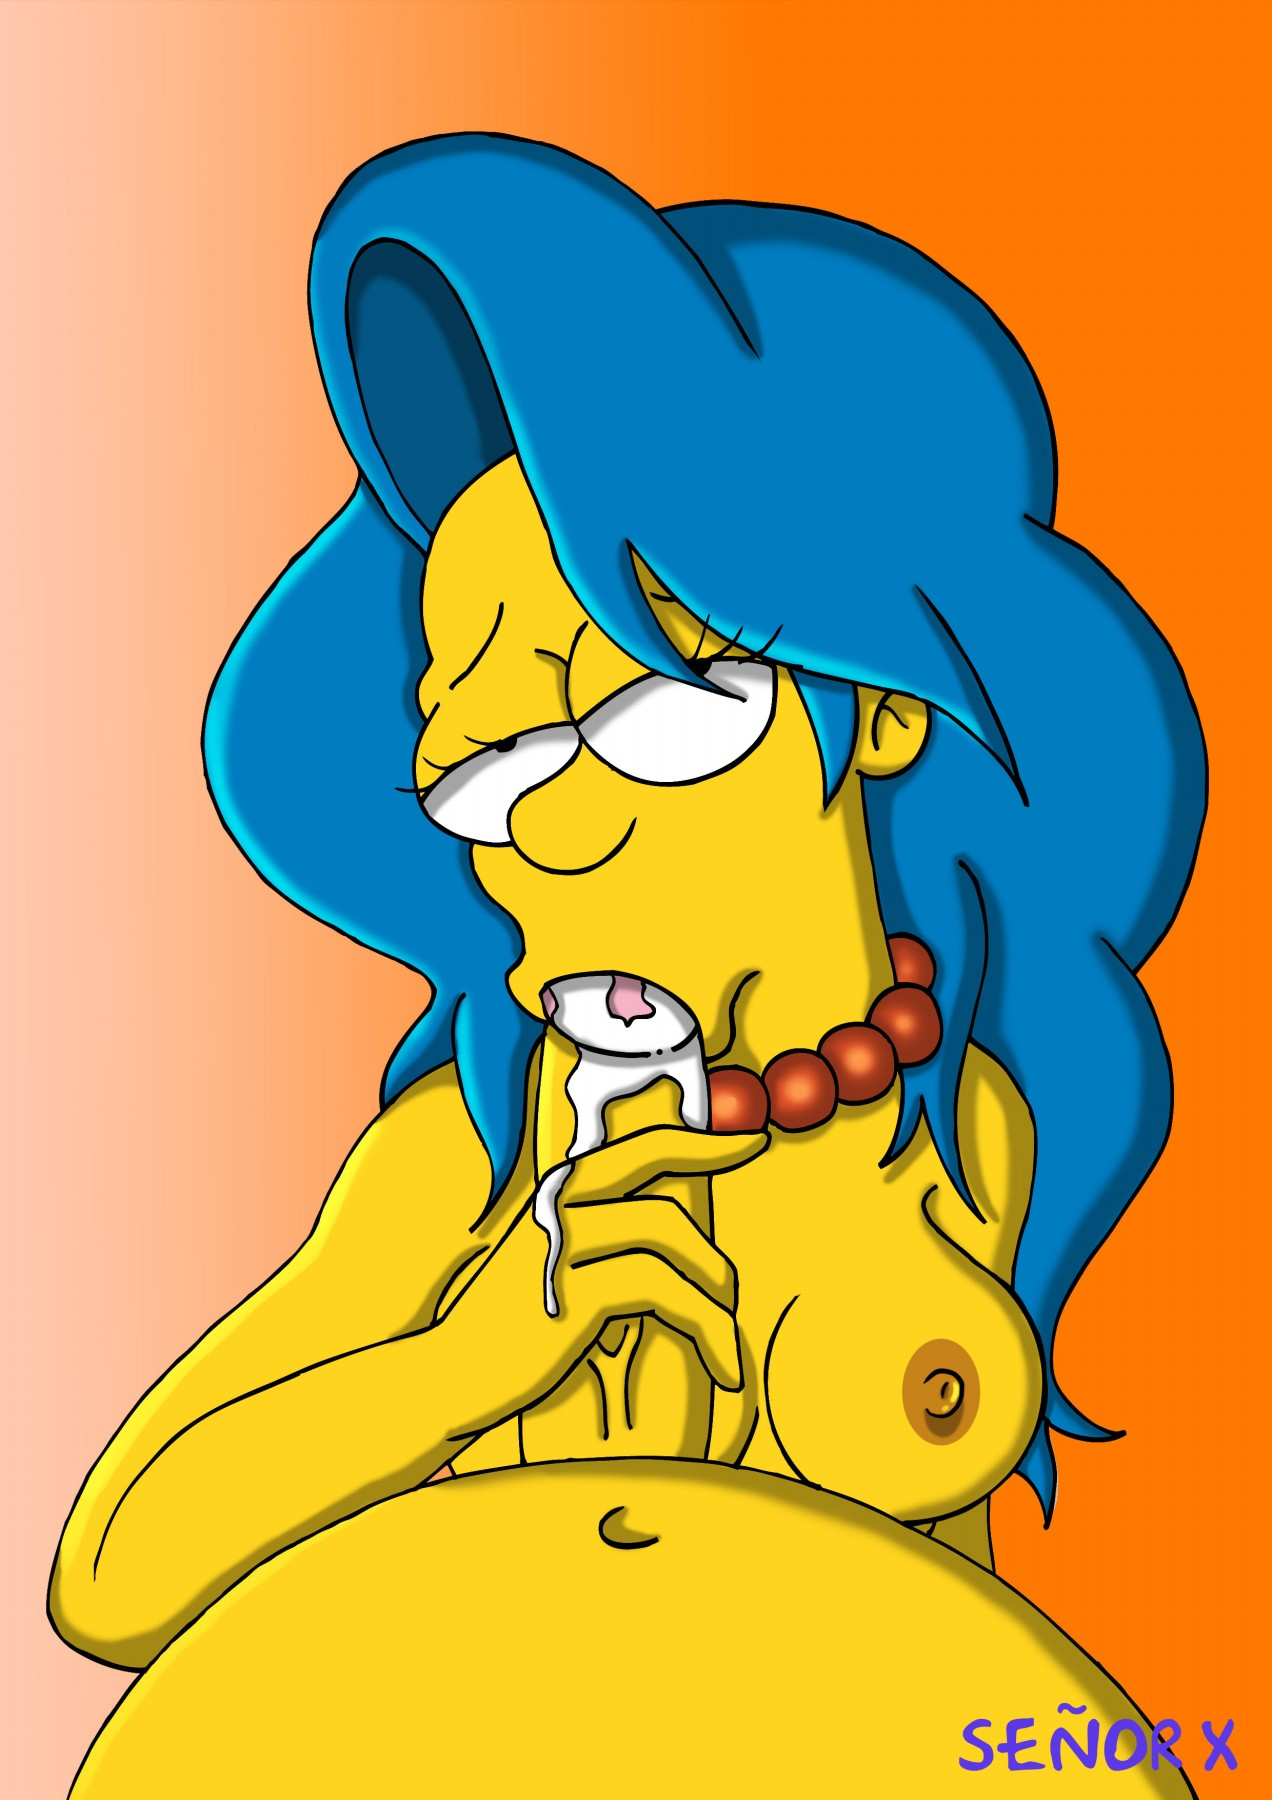 The simpsons irls characters horney nude, deep thorat blowjob